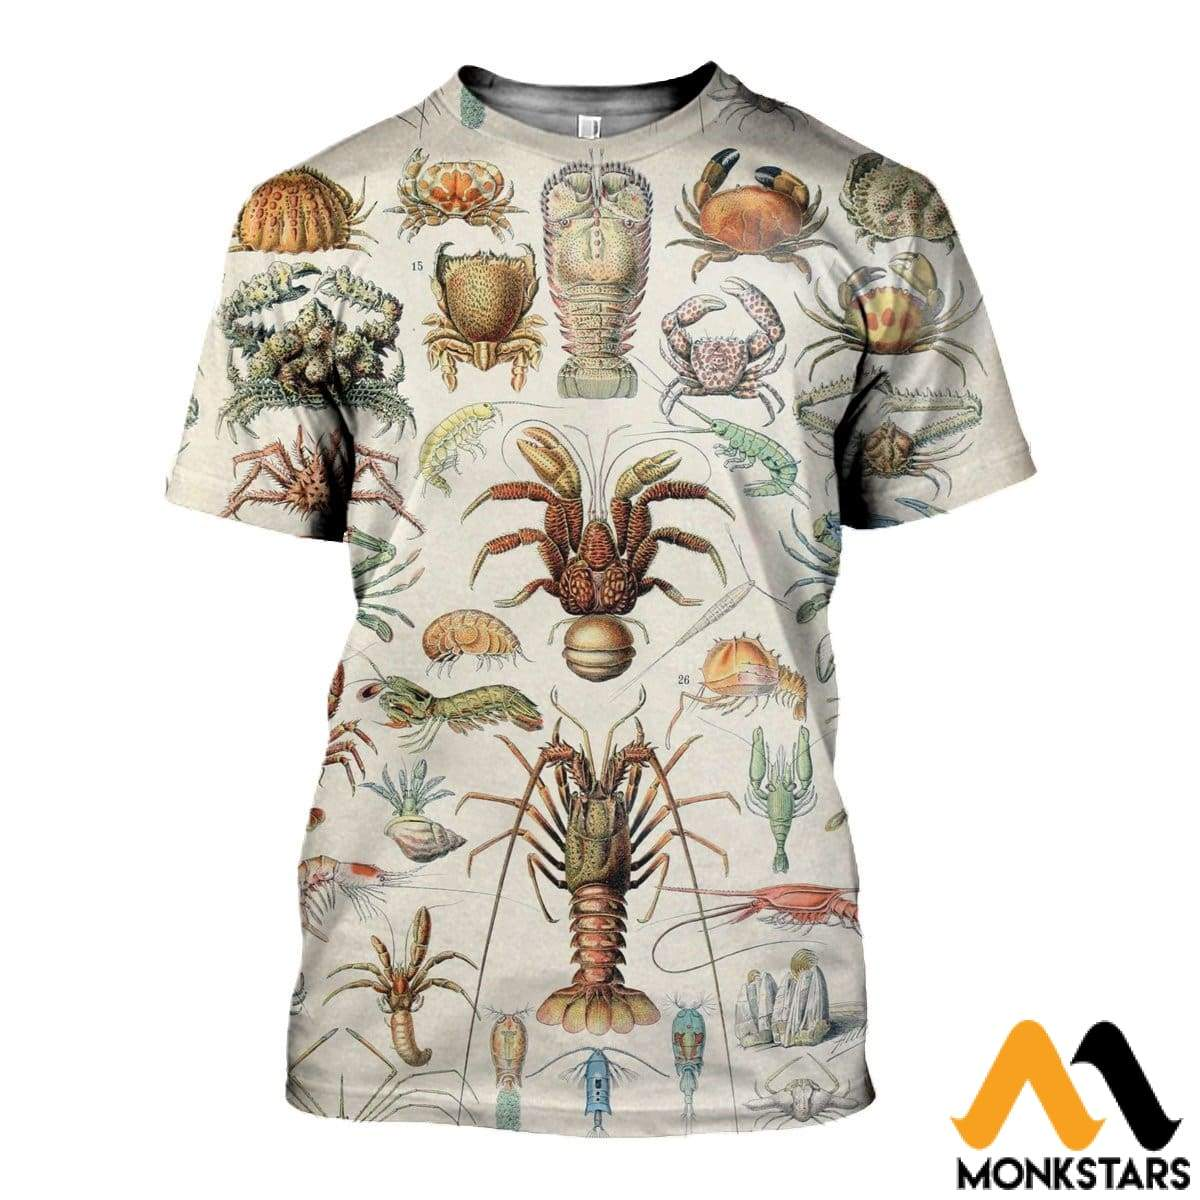 3D All Over Printed Sea Crustaceans Shirts And Shorts T-Shirt / Xs Clothes